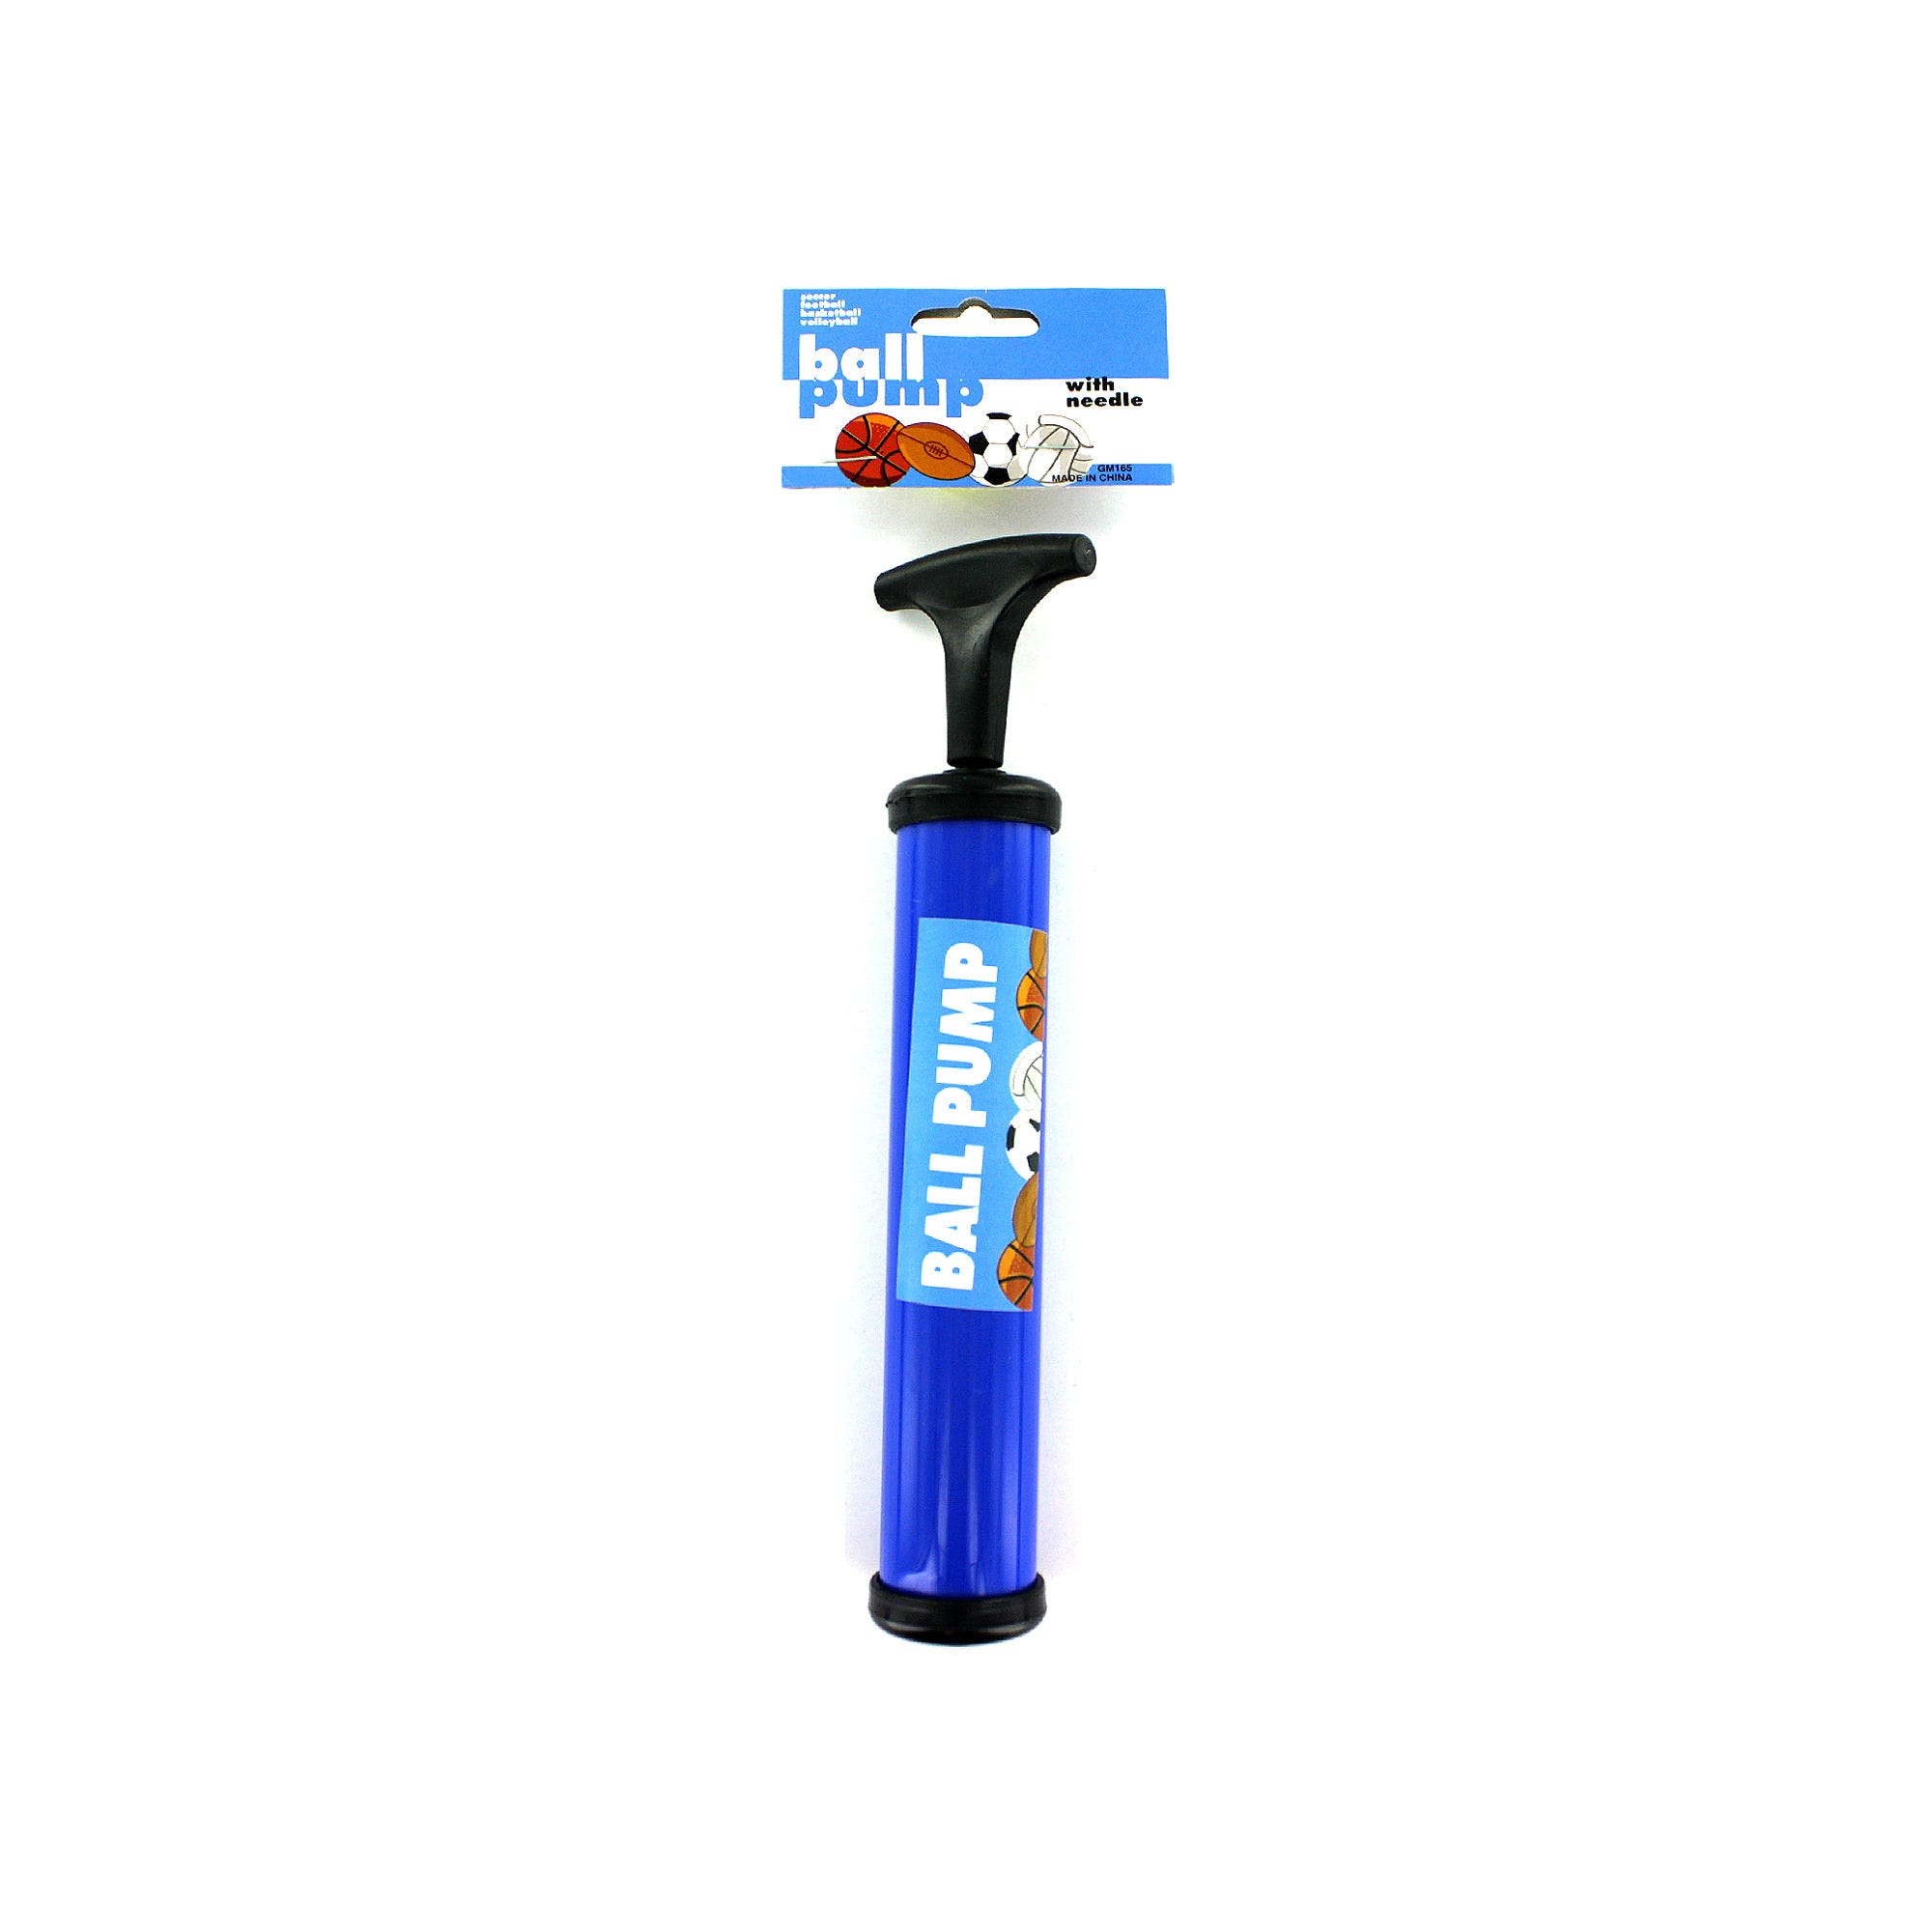 Sports Ball Pump with Needle- Qty 24